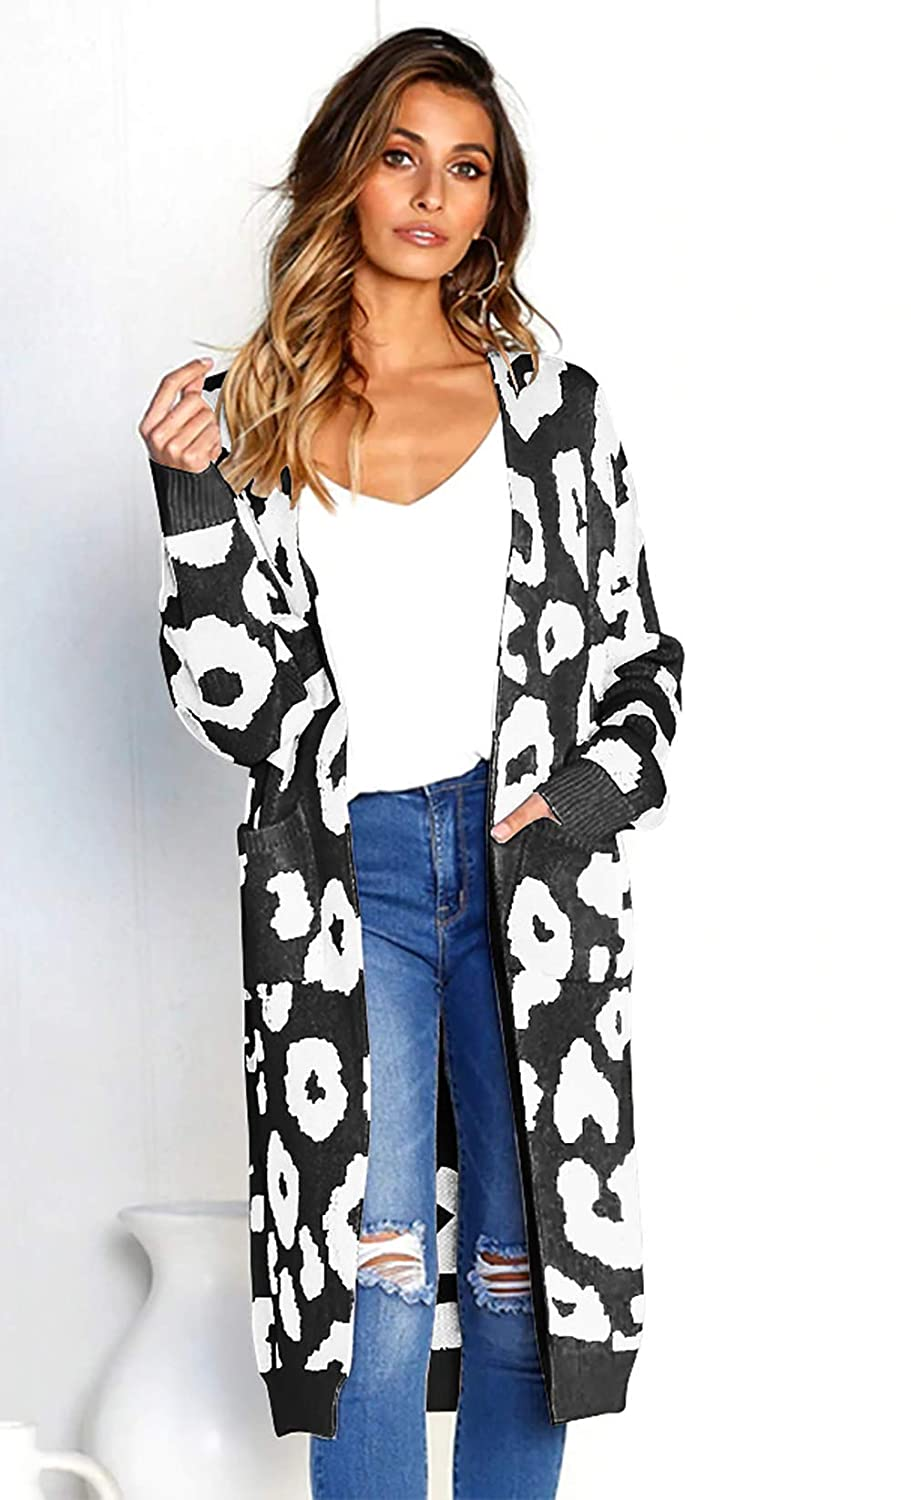 9e7361db70b BTFBM Women Long Sleeve Open Front Leopard Knit Long Cardigan Casual Print  Knitted Maxi Sweater Coat Outwear with Pockets at Amazon Women s Clothing  store